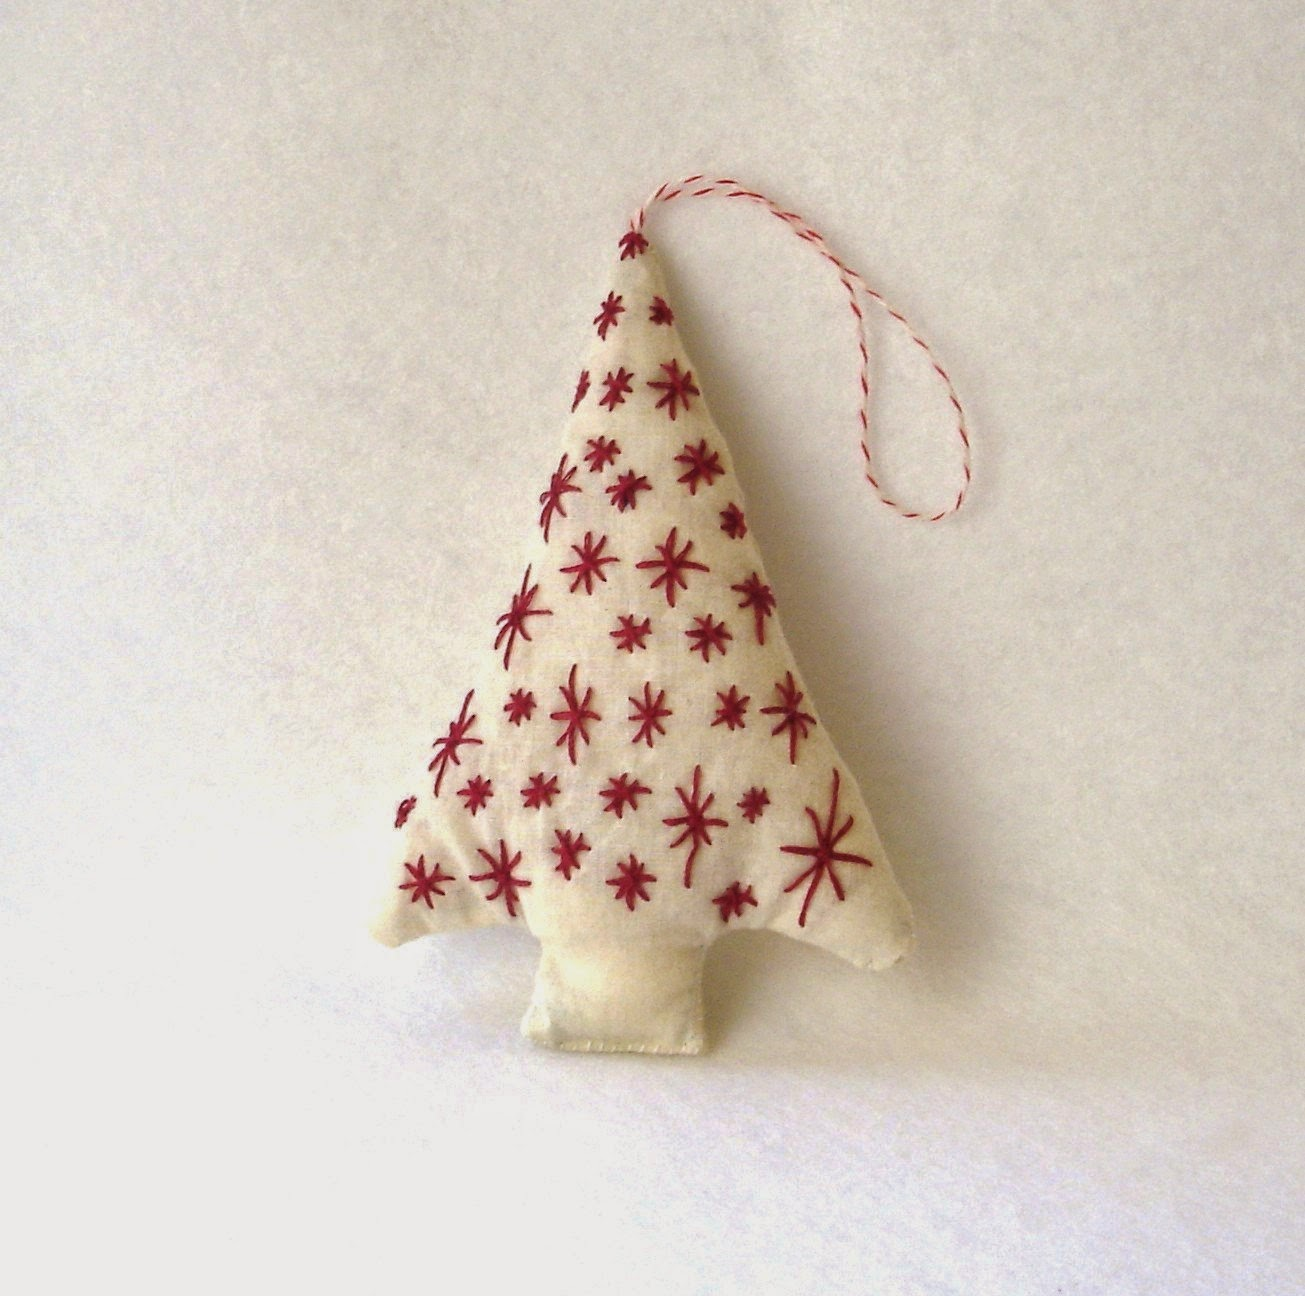 https://www.etsy.com/listing/107620074/redwork-pine-tree-christmas-ornament